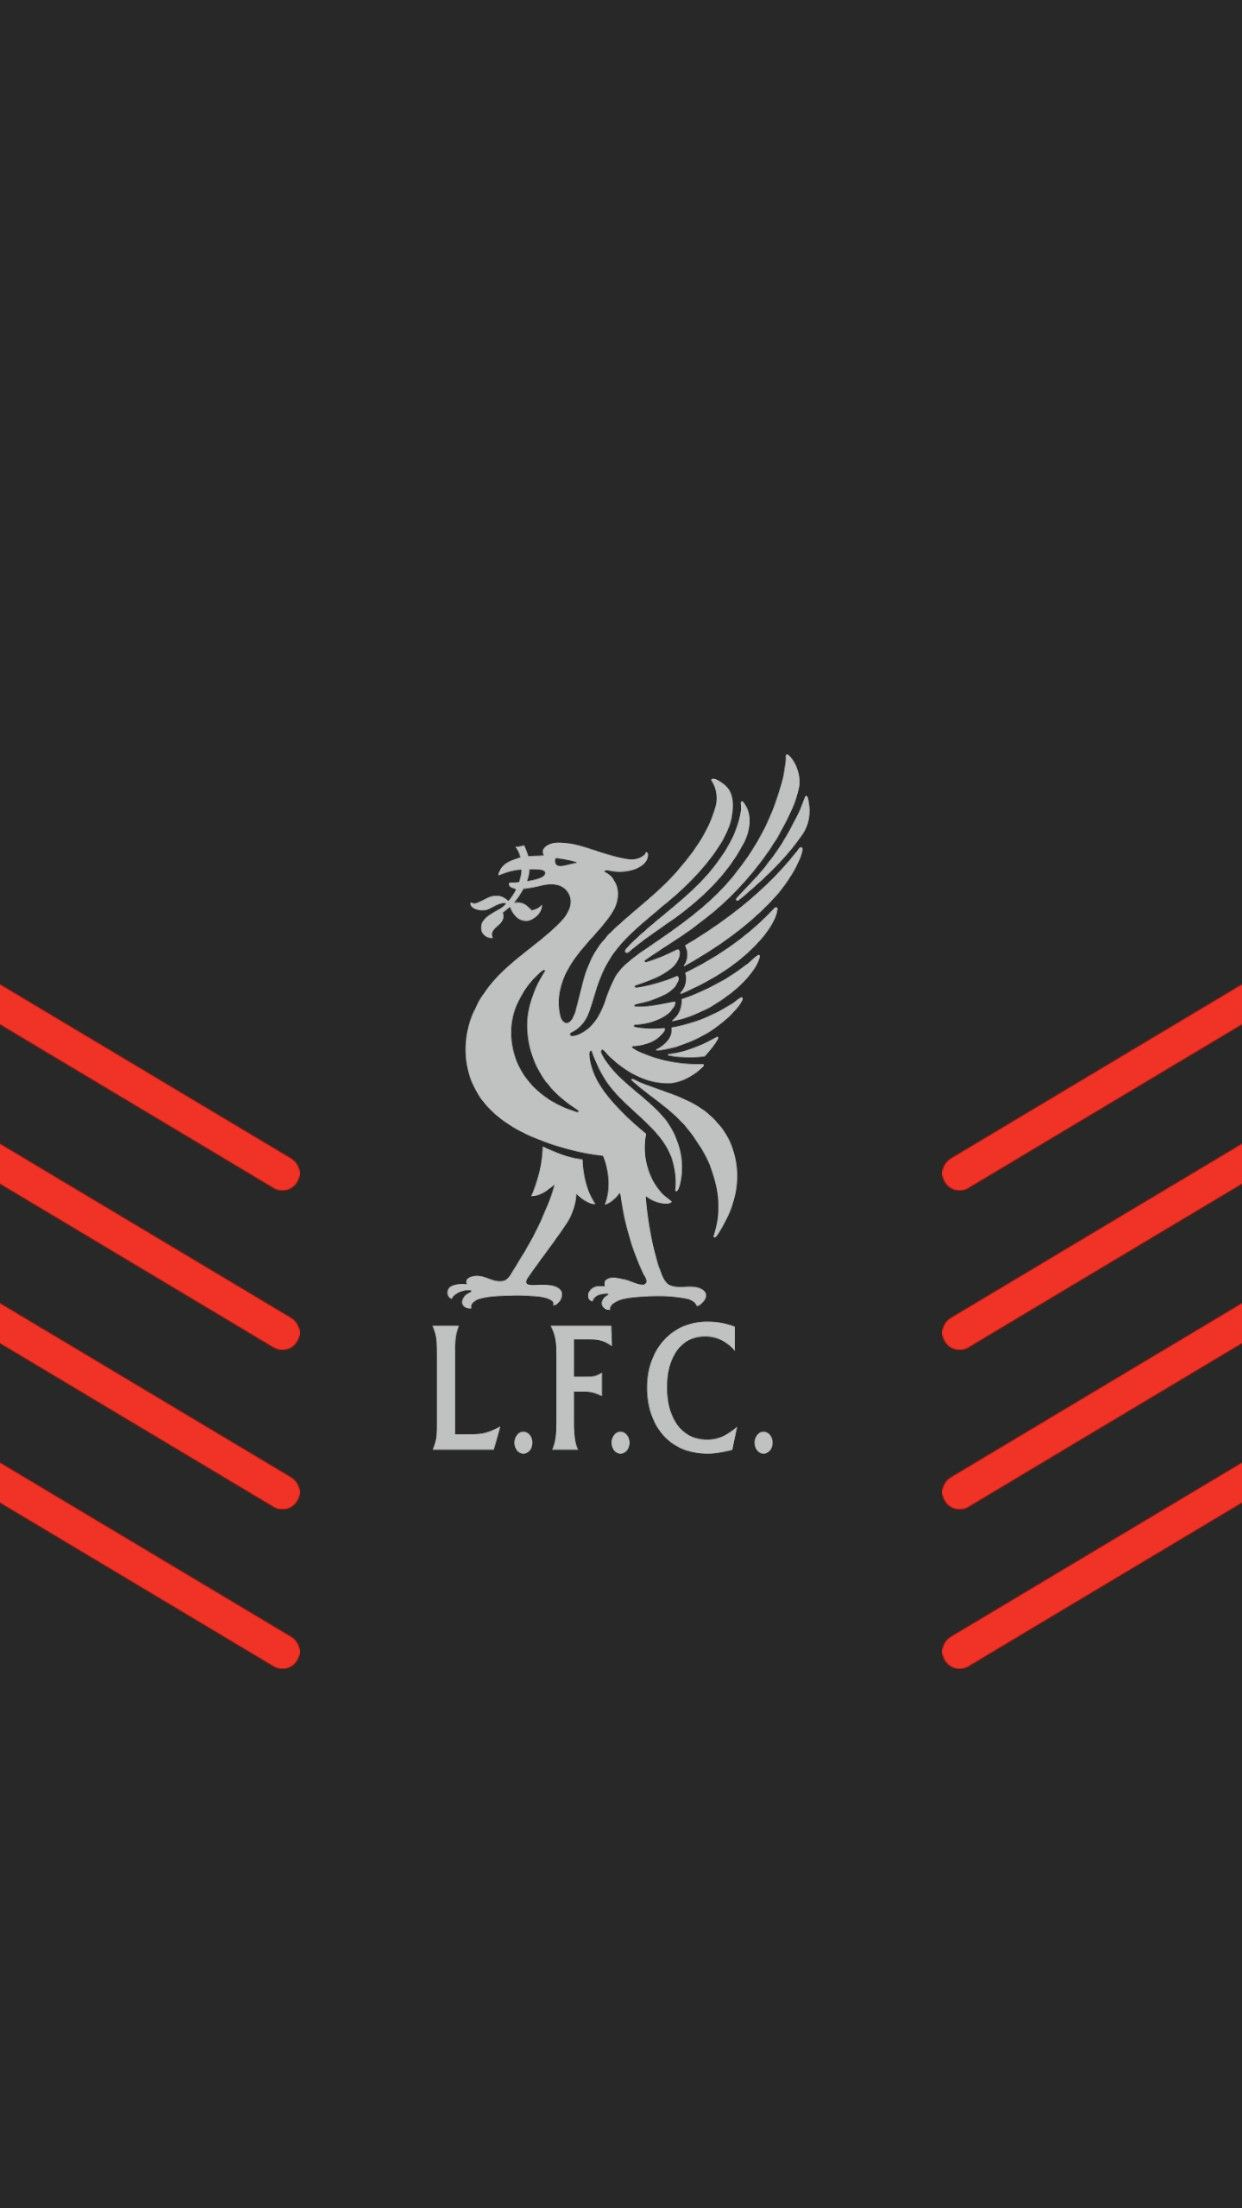 45 Liverpool Phone Wallpapers   Download at WallpaperBro 1242x2208